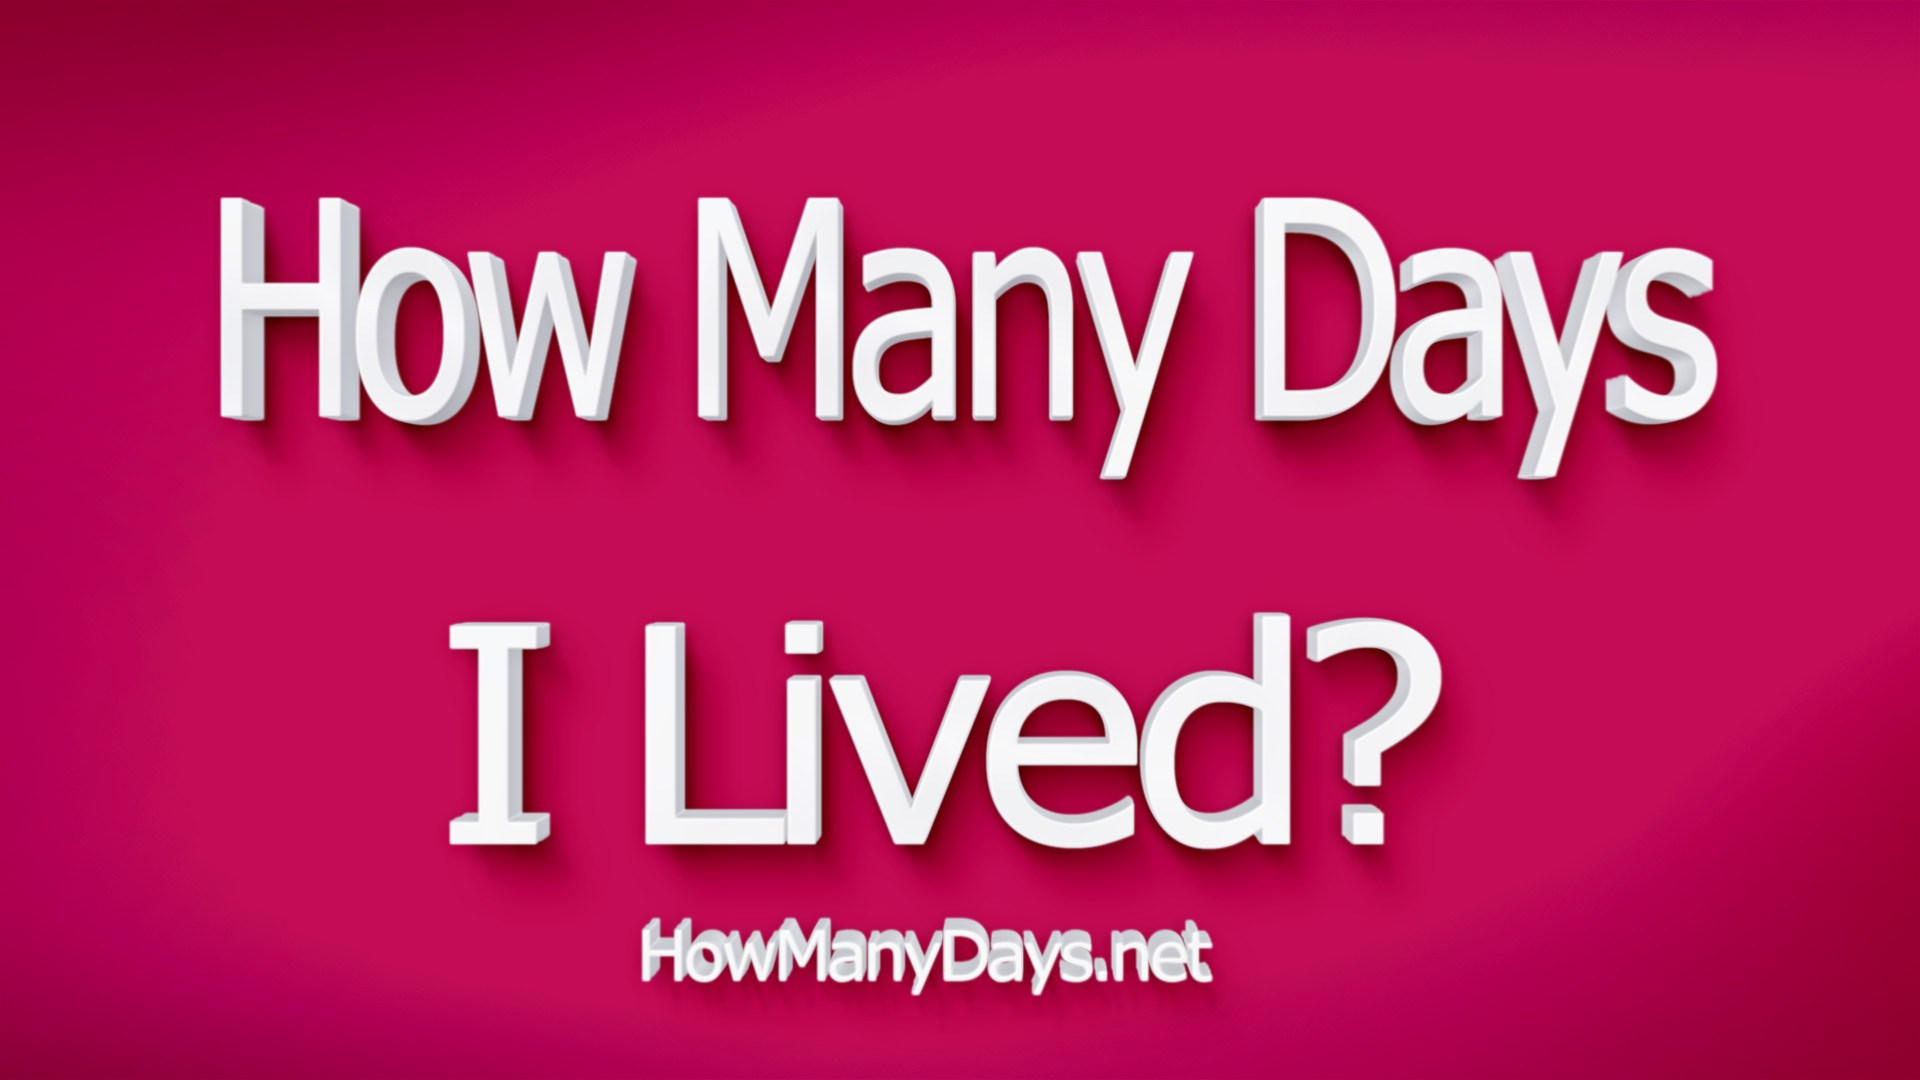 how many days have i lived, how many days have i been alive, how many days i lived, how many day have i lived, how many days i have lived, how many days have i lived calculator